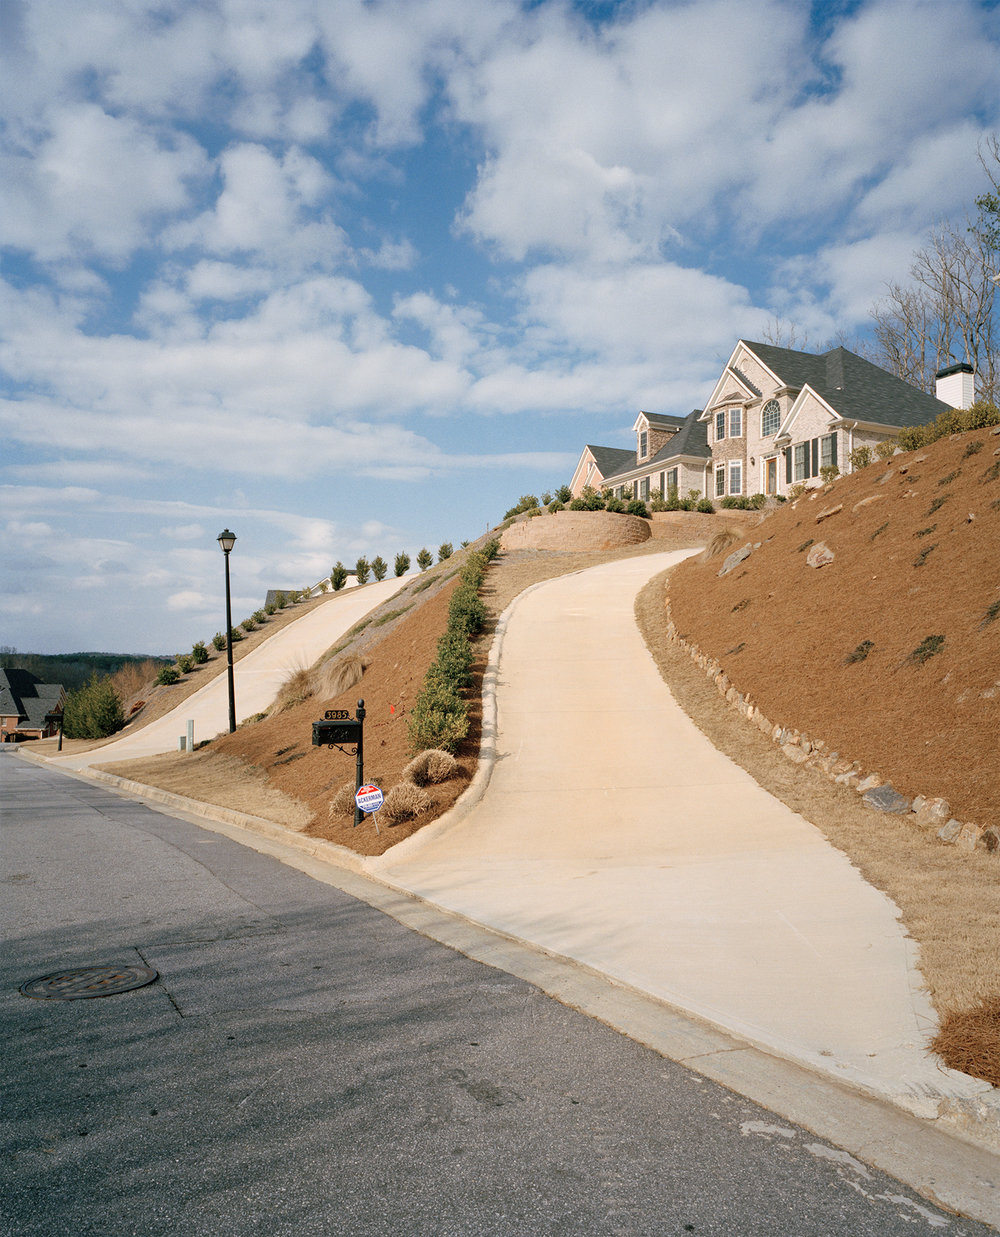 Steep Driveways, Suwanee, GA. 2009